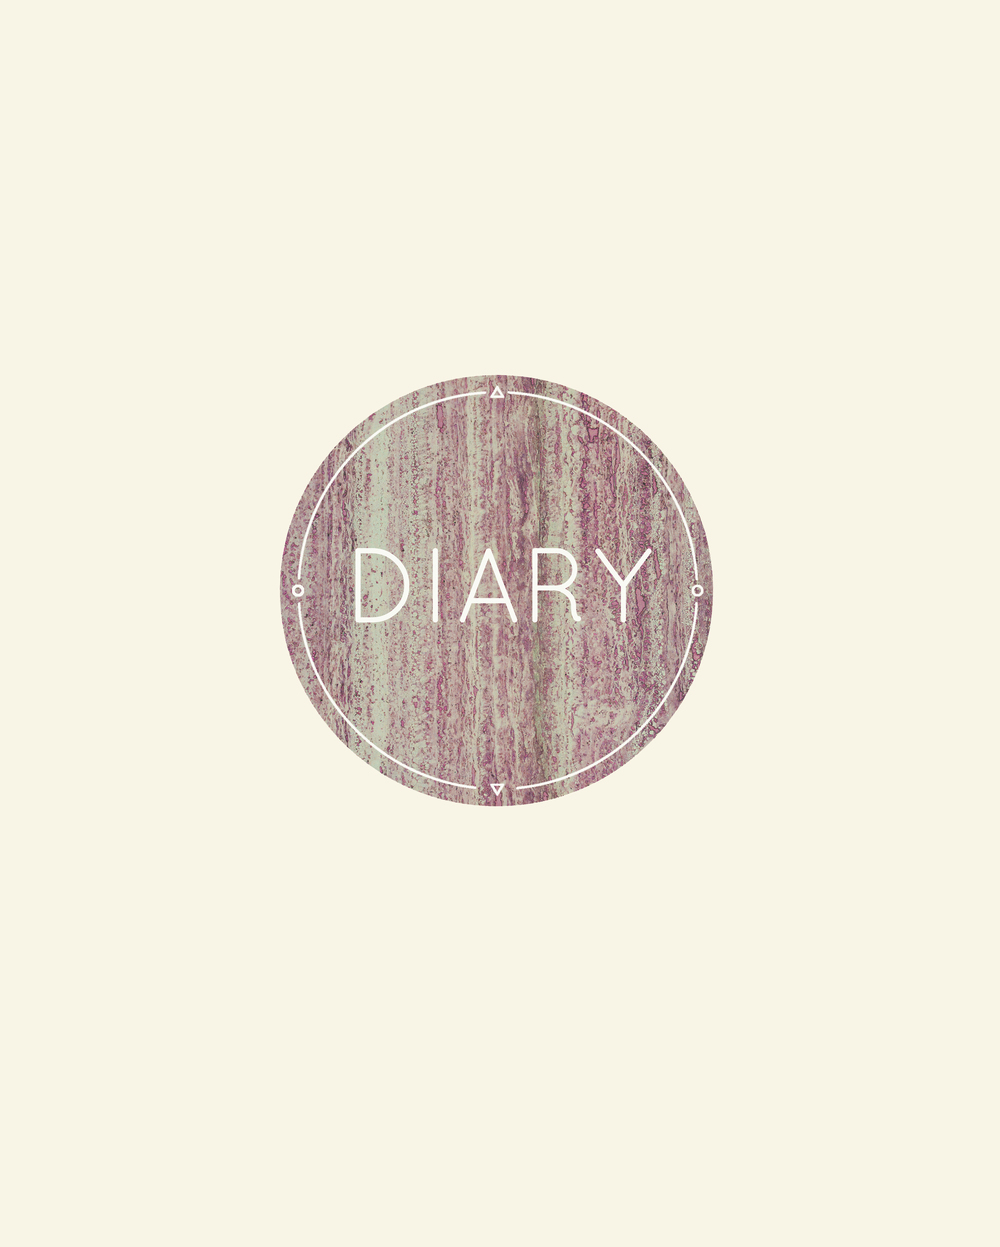 DIARY COVER PAGE.jpg